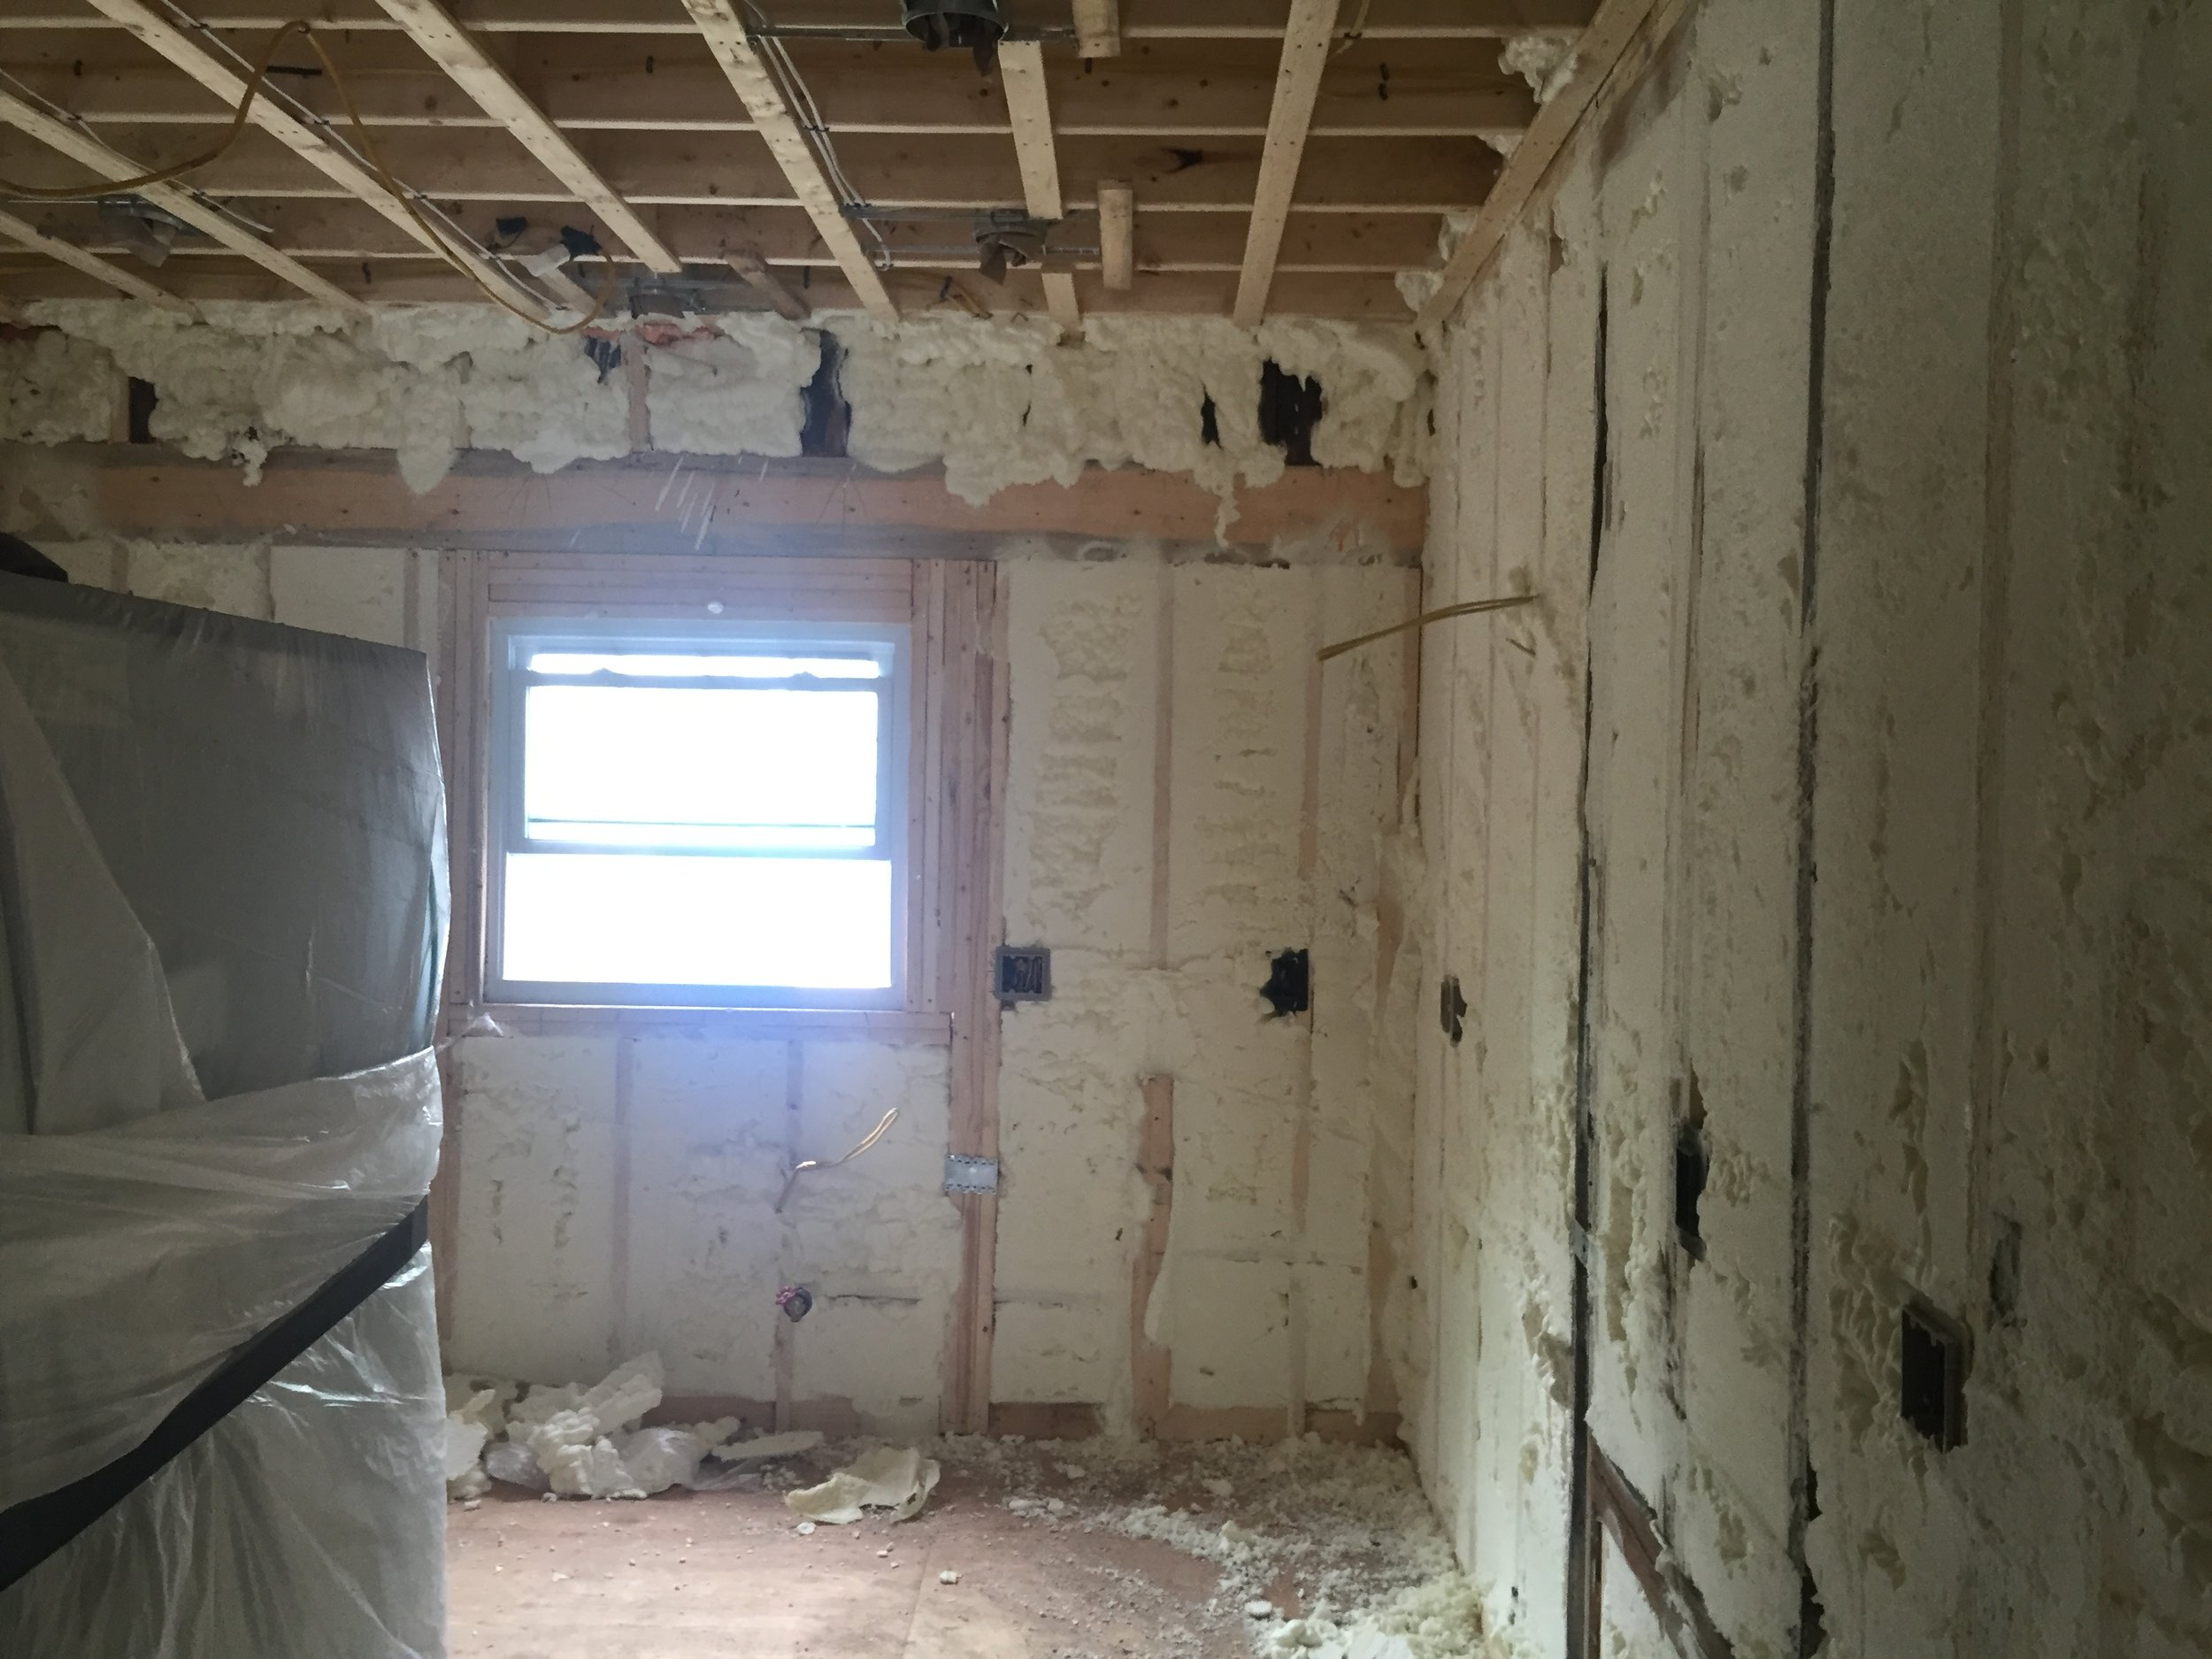 Closed-cell spray foam insulation cuts down energy bills